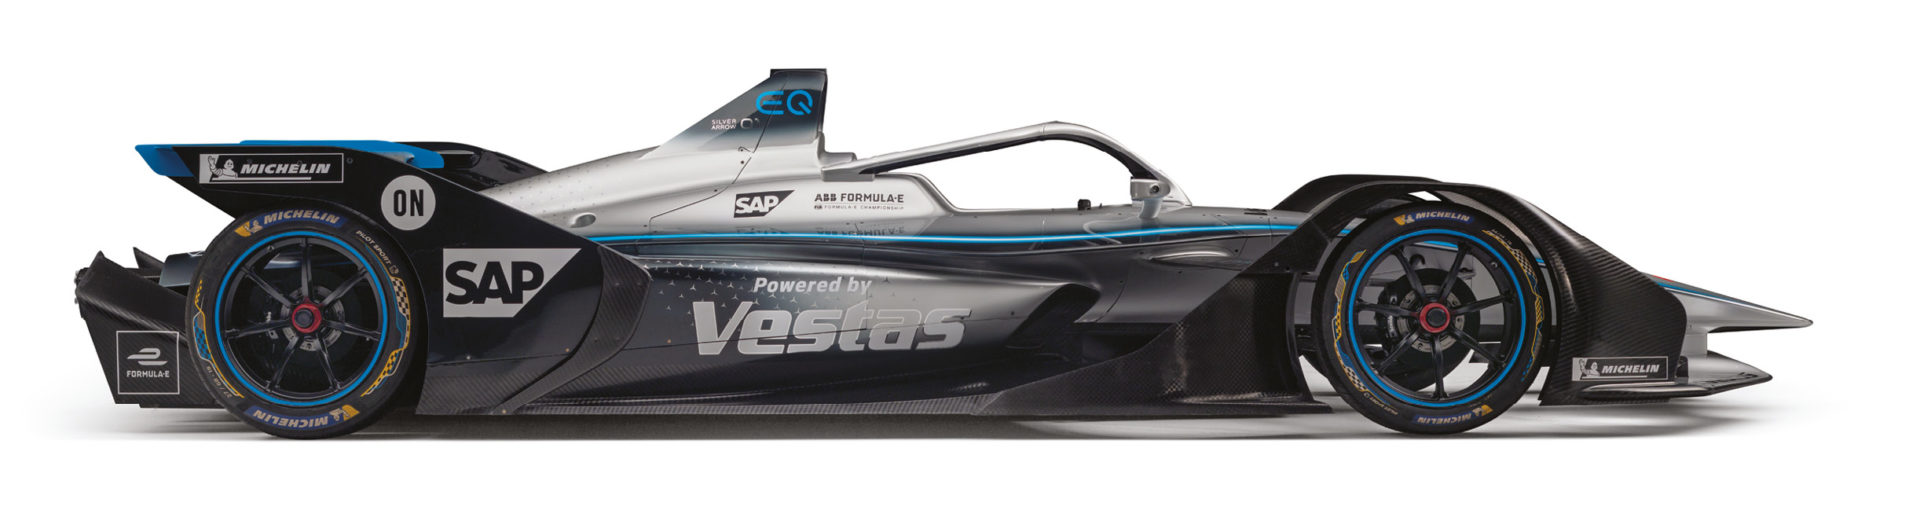 The new Mercedes-Benz EQ Silver Arrow 01 that will be its rival for top newcomer